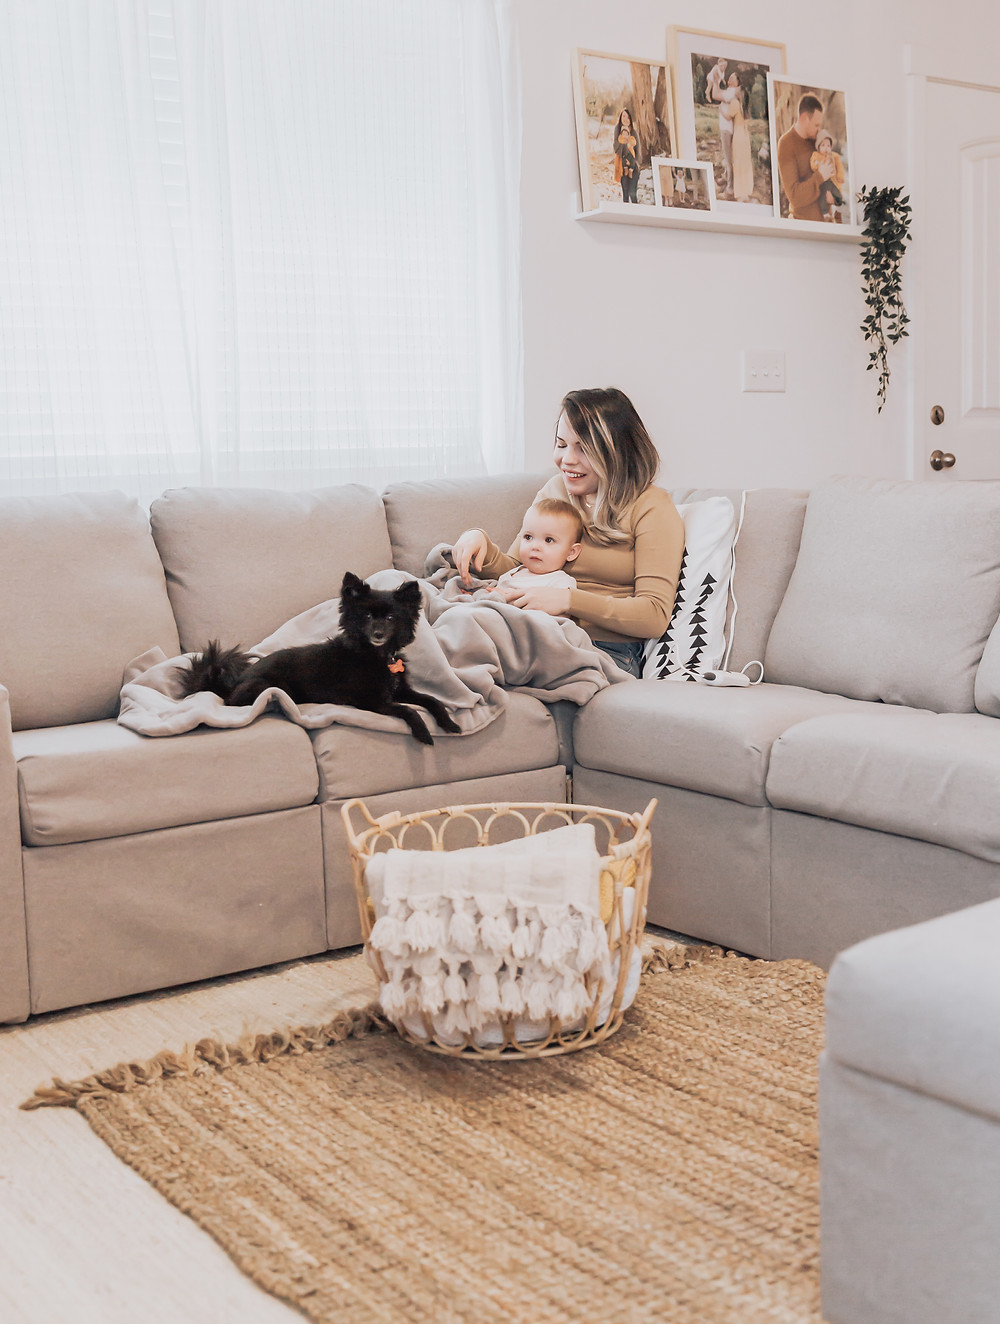 Beurer Electric Heating Blanket being used with baby and pet